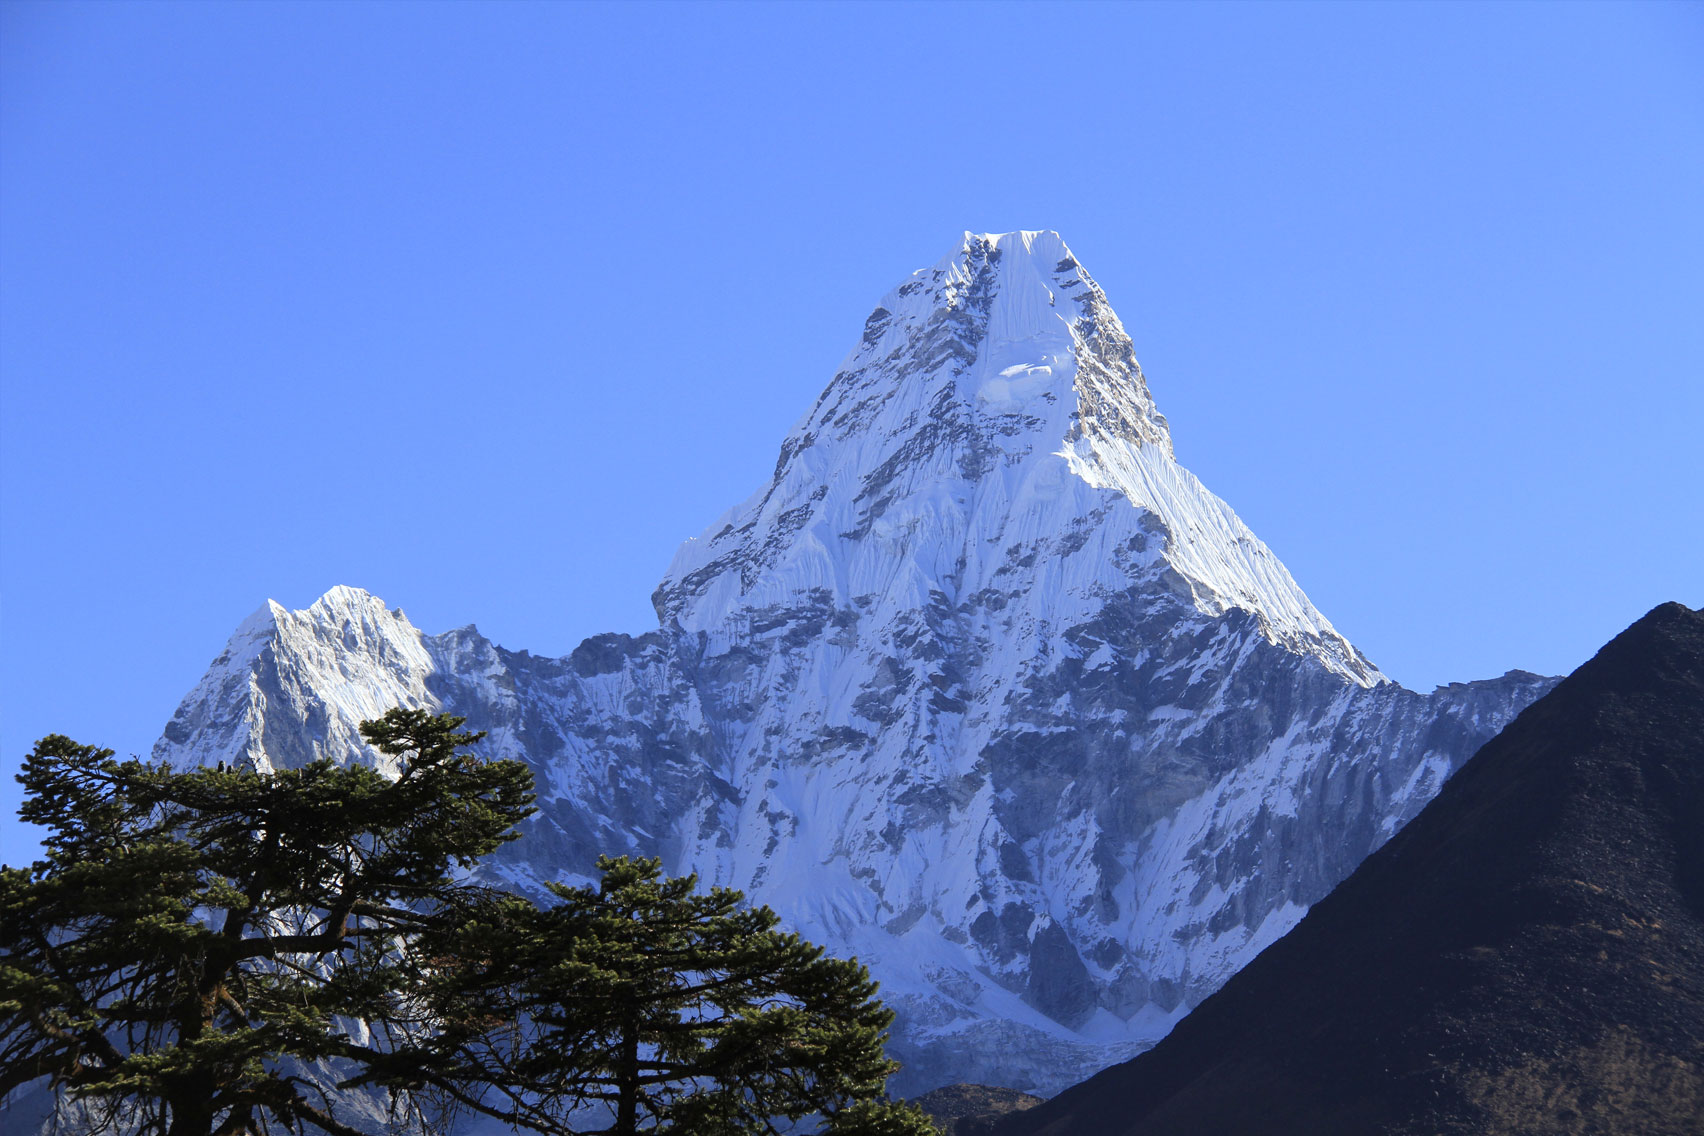 Day 8: Hike to Ama Dablam Base Camp (4600m) and return to Pangboche (6hrs, 4000m)